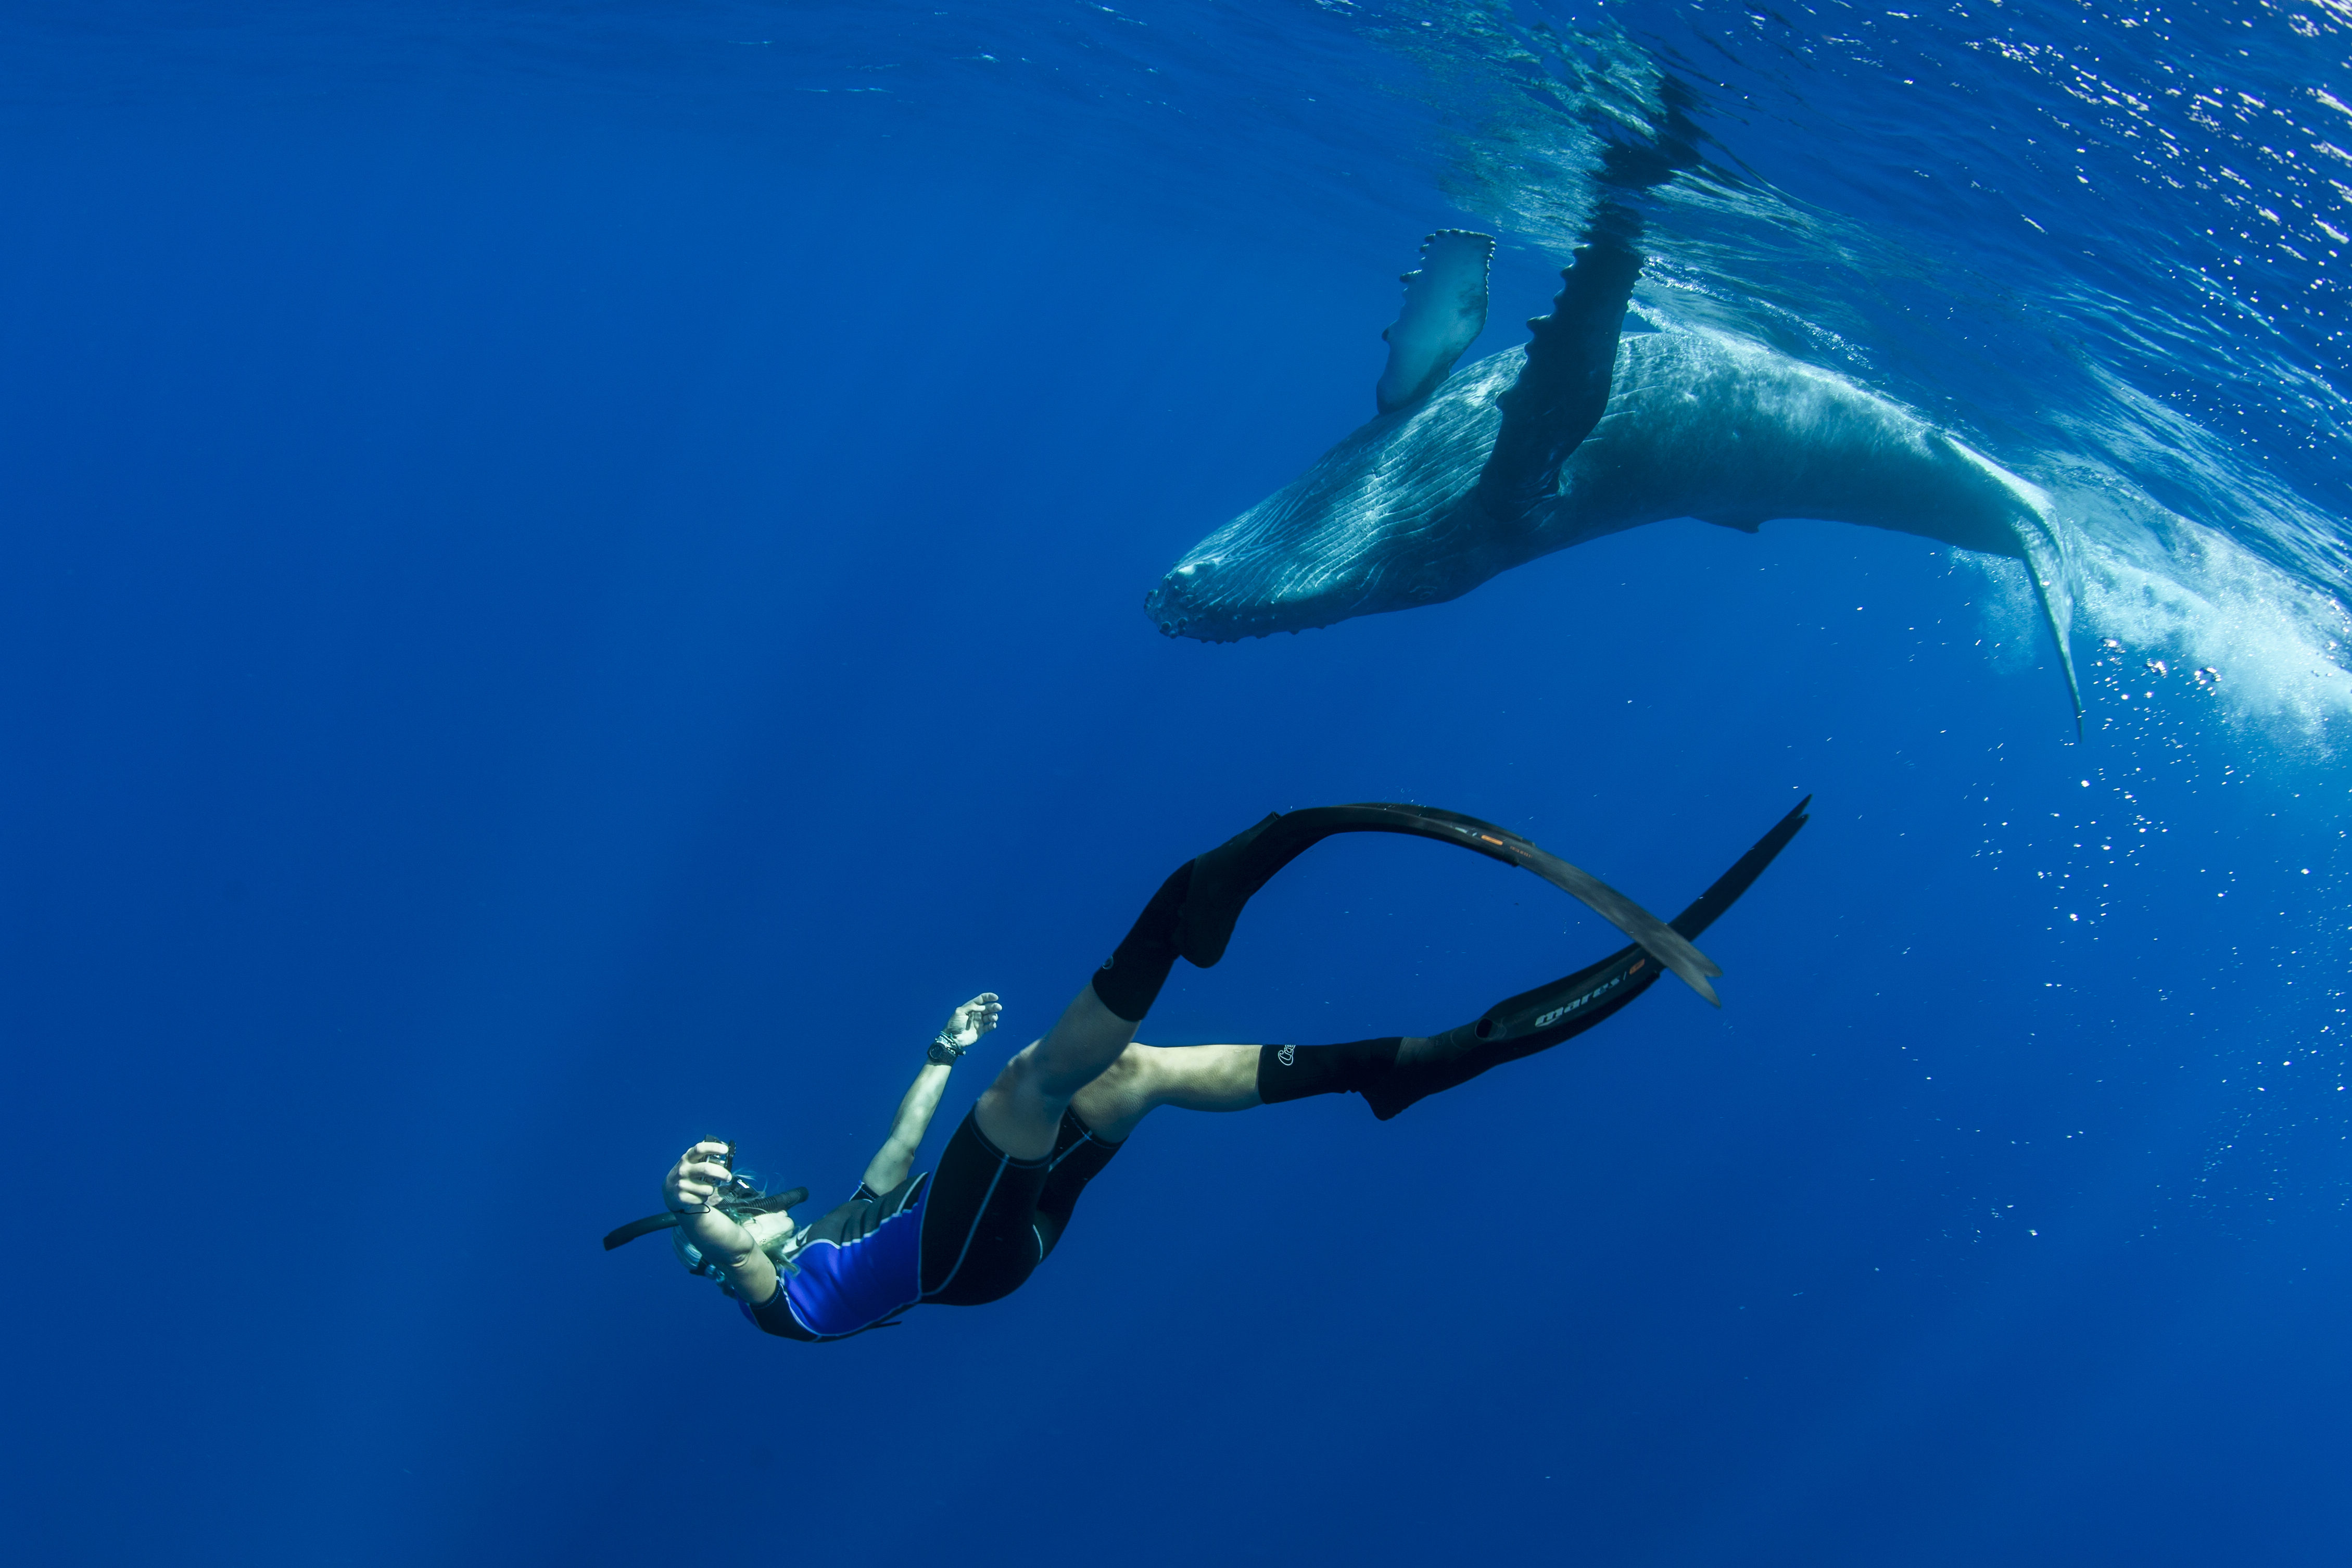 One-of-those-moments-where-the-world-stops-and-everything-ceases-to-exist.-This-baby-humpback-is-one-of-many-reasons-I-love-the-ocean-photo-by-Scott-Portelli-e1467151462750